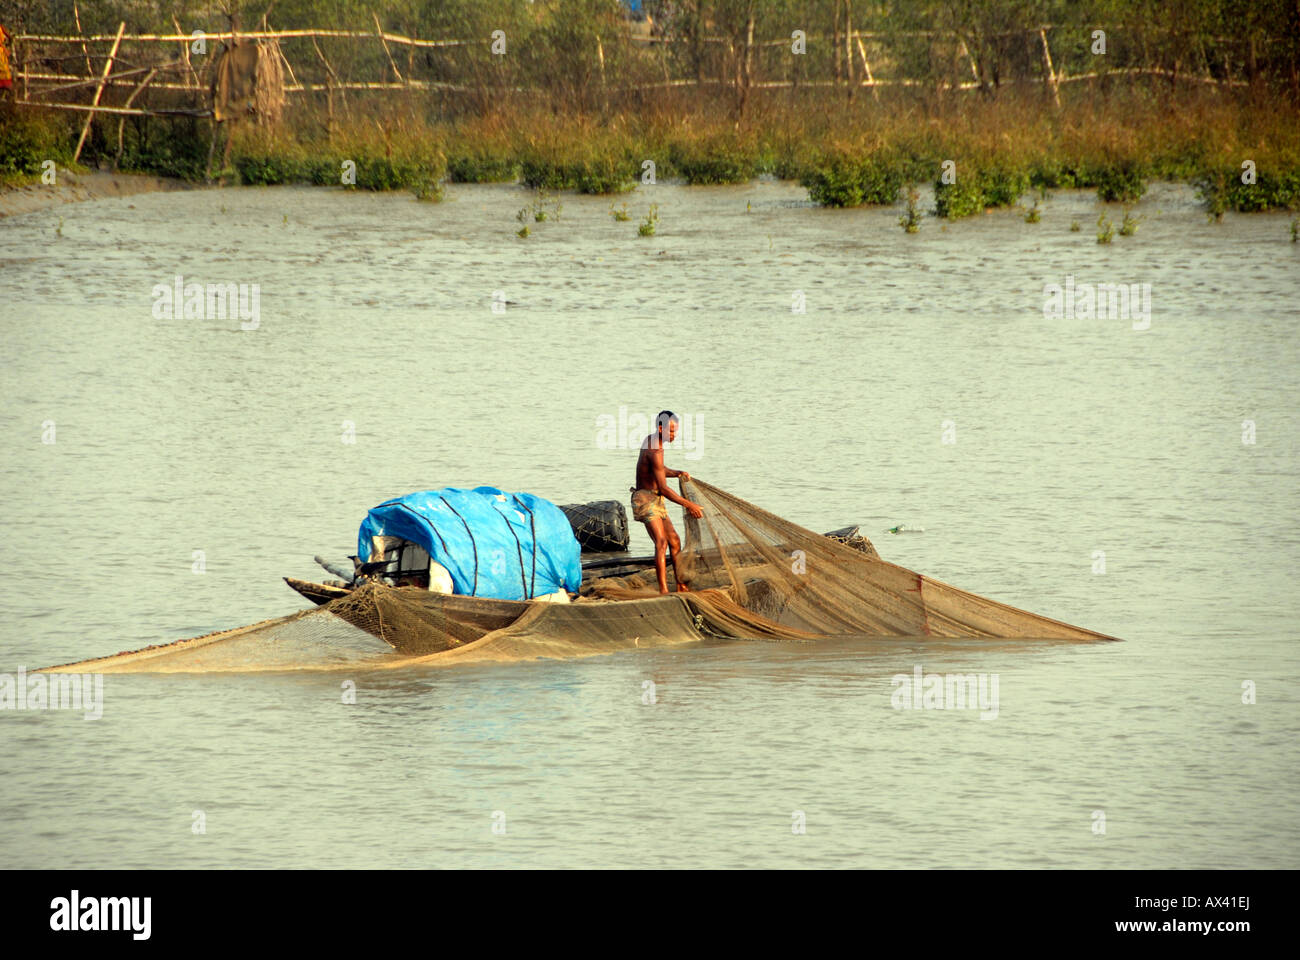 fisherman hauling in nets, Mongla, delta waterways, Bangladesh - Stock Image